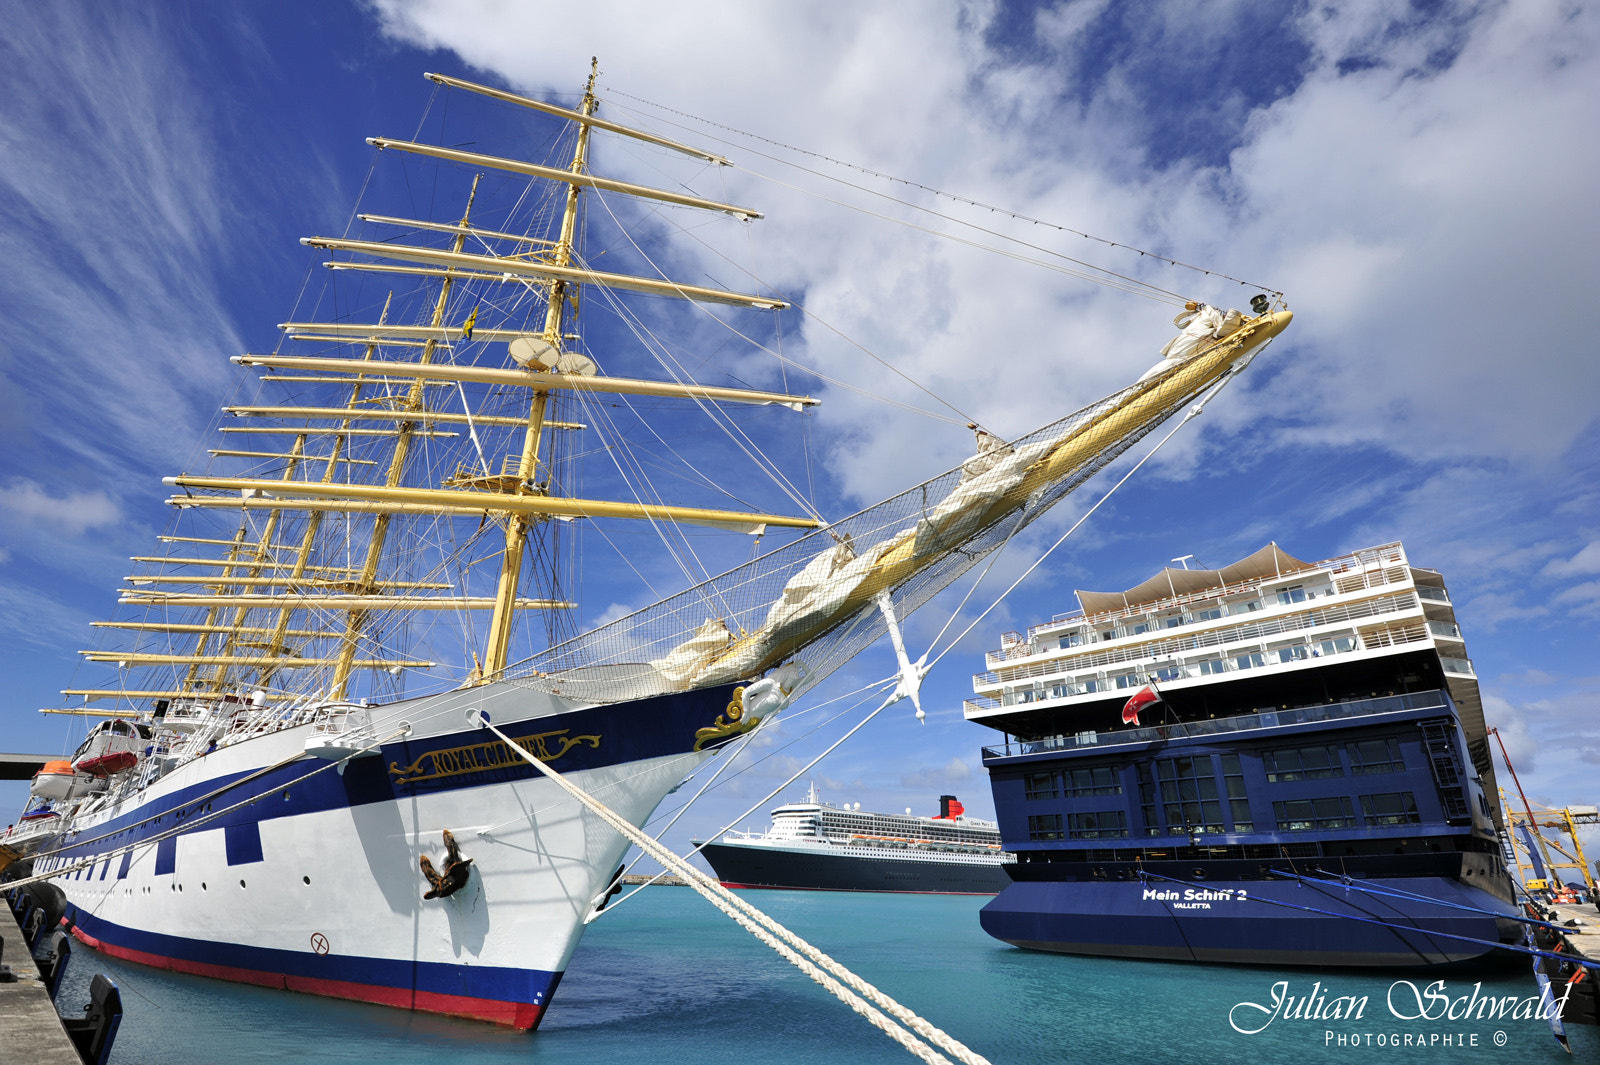 Photograph Royal Clipper, TUI Mein Schiff 2 and Queen Mary 2 by Julian Schwald on 500px